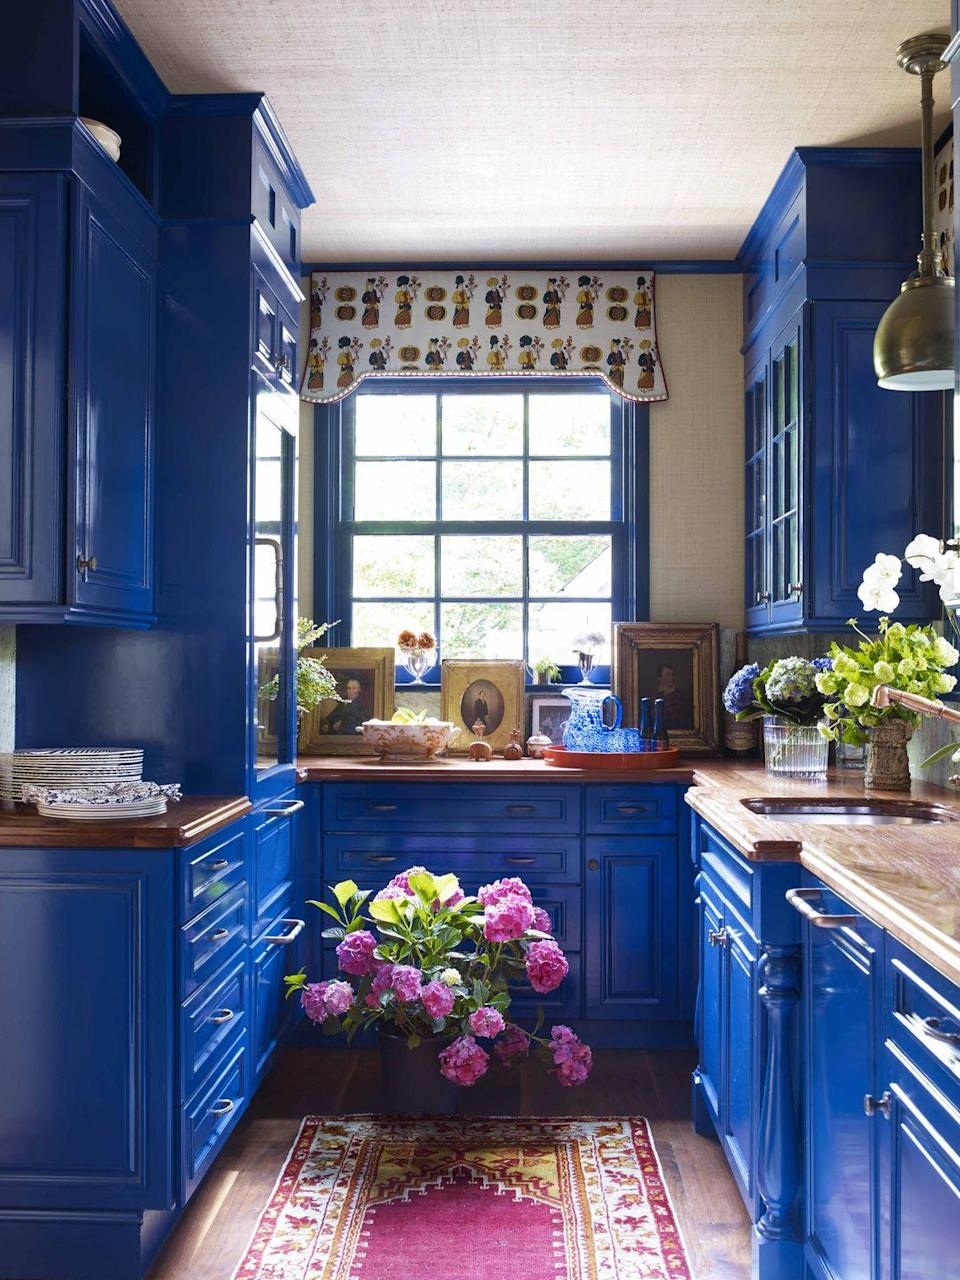 """<p>At this Newport, Rhode Island, home designed by <a href=""""https://www.ruthiesommers.com/"""" rel=""""nofollow noopener"""" target=""""_blank"""" data-ylk=""""slk:Ruthie Sommers"""" class=""""link rapid-noclick-resp"""">Ruthie Sommers</a>, the bar cabinetry is lacquered a custom color from <a href=""""https://www.finepaintsofeurope.com/"""" rel=""""nofollow noopener"""" target=""""_blank"""" data-ylk=""""slk:Fine Paints of Europe"""" class=""""link rapid-noclick-resp"""">Fine Paints of Europe</a>. The whimsical valence is covered a <a href=""""https://www.katieridder.com/products/fabrics.html"""" rel=""""nofollow noopener"""" target=""""_blank"""" data-ylk=""""slk:Katie Ridder fabric"""" class=""""link rapid-noclick-resp"""">Katie Ridder fabric</a>. The grasscloth wallcovering on the walls and ceiling is from <a href=""""https://www.astek.com/"""" rel=""""nofollow noopener"""" target=""""_blank"""" data-ylk=""""slk:Astek"""" class=""""link rapid-noclick-resp"""">Astek</a>; the rug is from <a href=""""https://lawrenceoflabrea.com/"""" rel=""""nofollow noopener"""" target=""""_blank"""" data-ylk=""""slk:Lawrence of La Brea"""" class=""""link rapid-noclick-resp"""">Lawrence of La Brea</a>. </p><p><a class=""""link rapid-noclick-resp"""" href=""""https://www.amazon.com/Kotobuki-Lacquer-Serving-Tray-2-Inch/dp/B00CJV9RTS?tag=syn-yahoo-20&ascsubtag=%5Bartid%7C10069.g.28837805%5Bsrc%7Cyahoo-us"""" rel=""""nofollow noopener"""" target=""""_blank"""" data-ylk=""""slk:Find A Similar Red Lacquer Tray Here"""">Find A Similar Red Lacquer Tray Here</a></p>"""